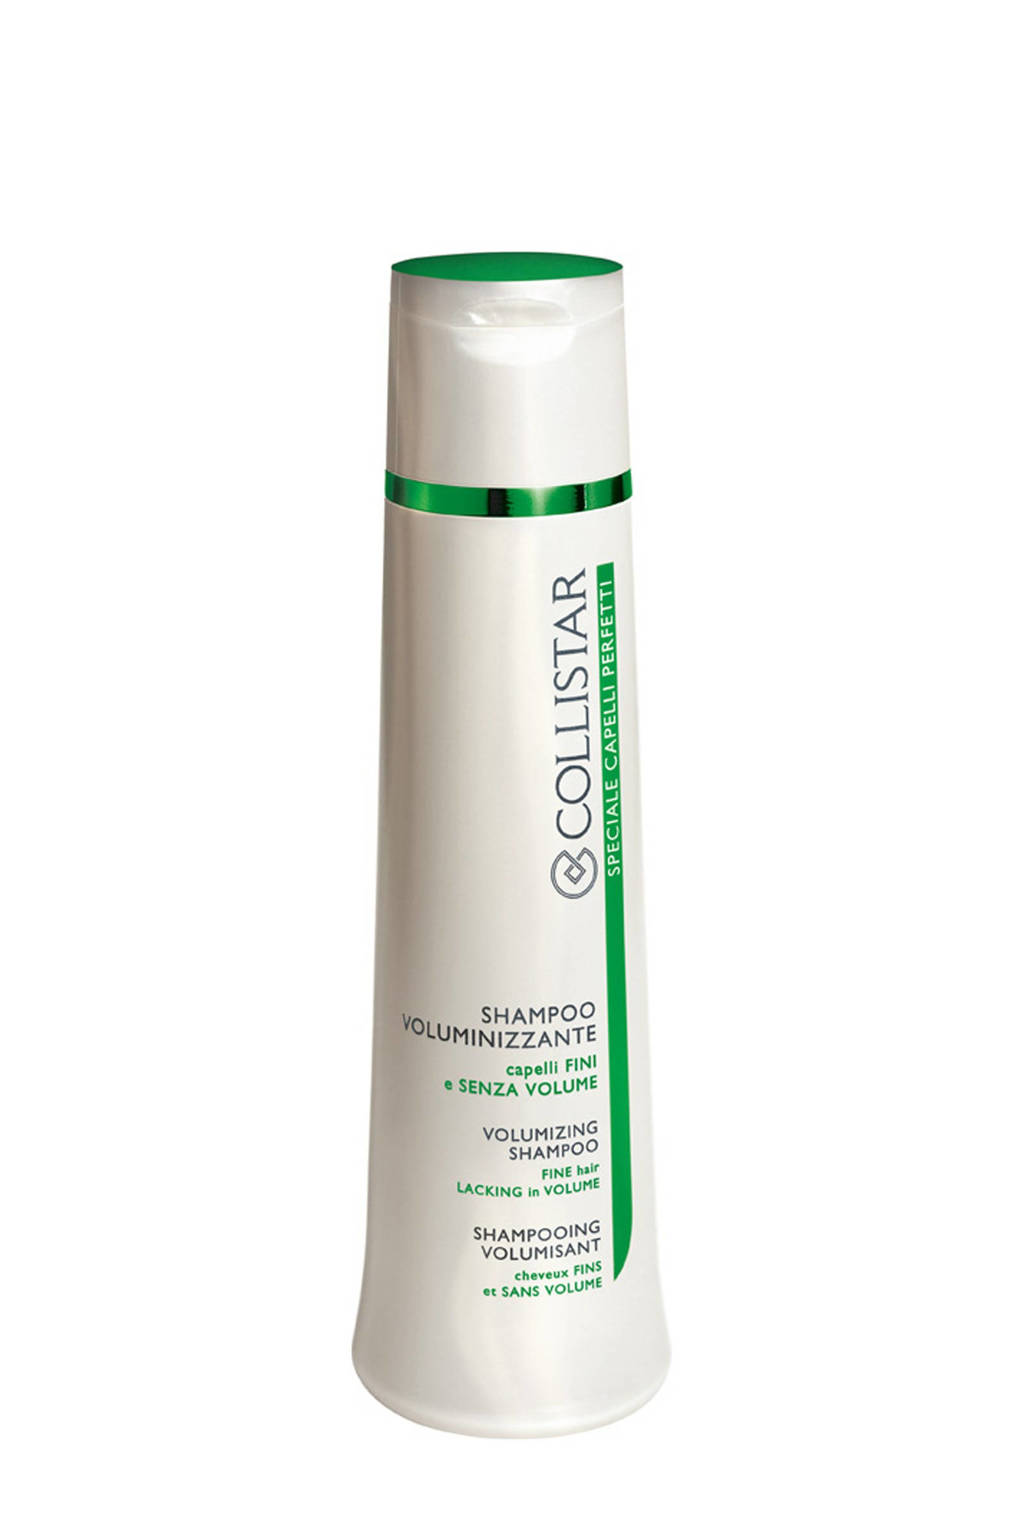 Collistar Volumizing shampoo - 250 ml